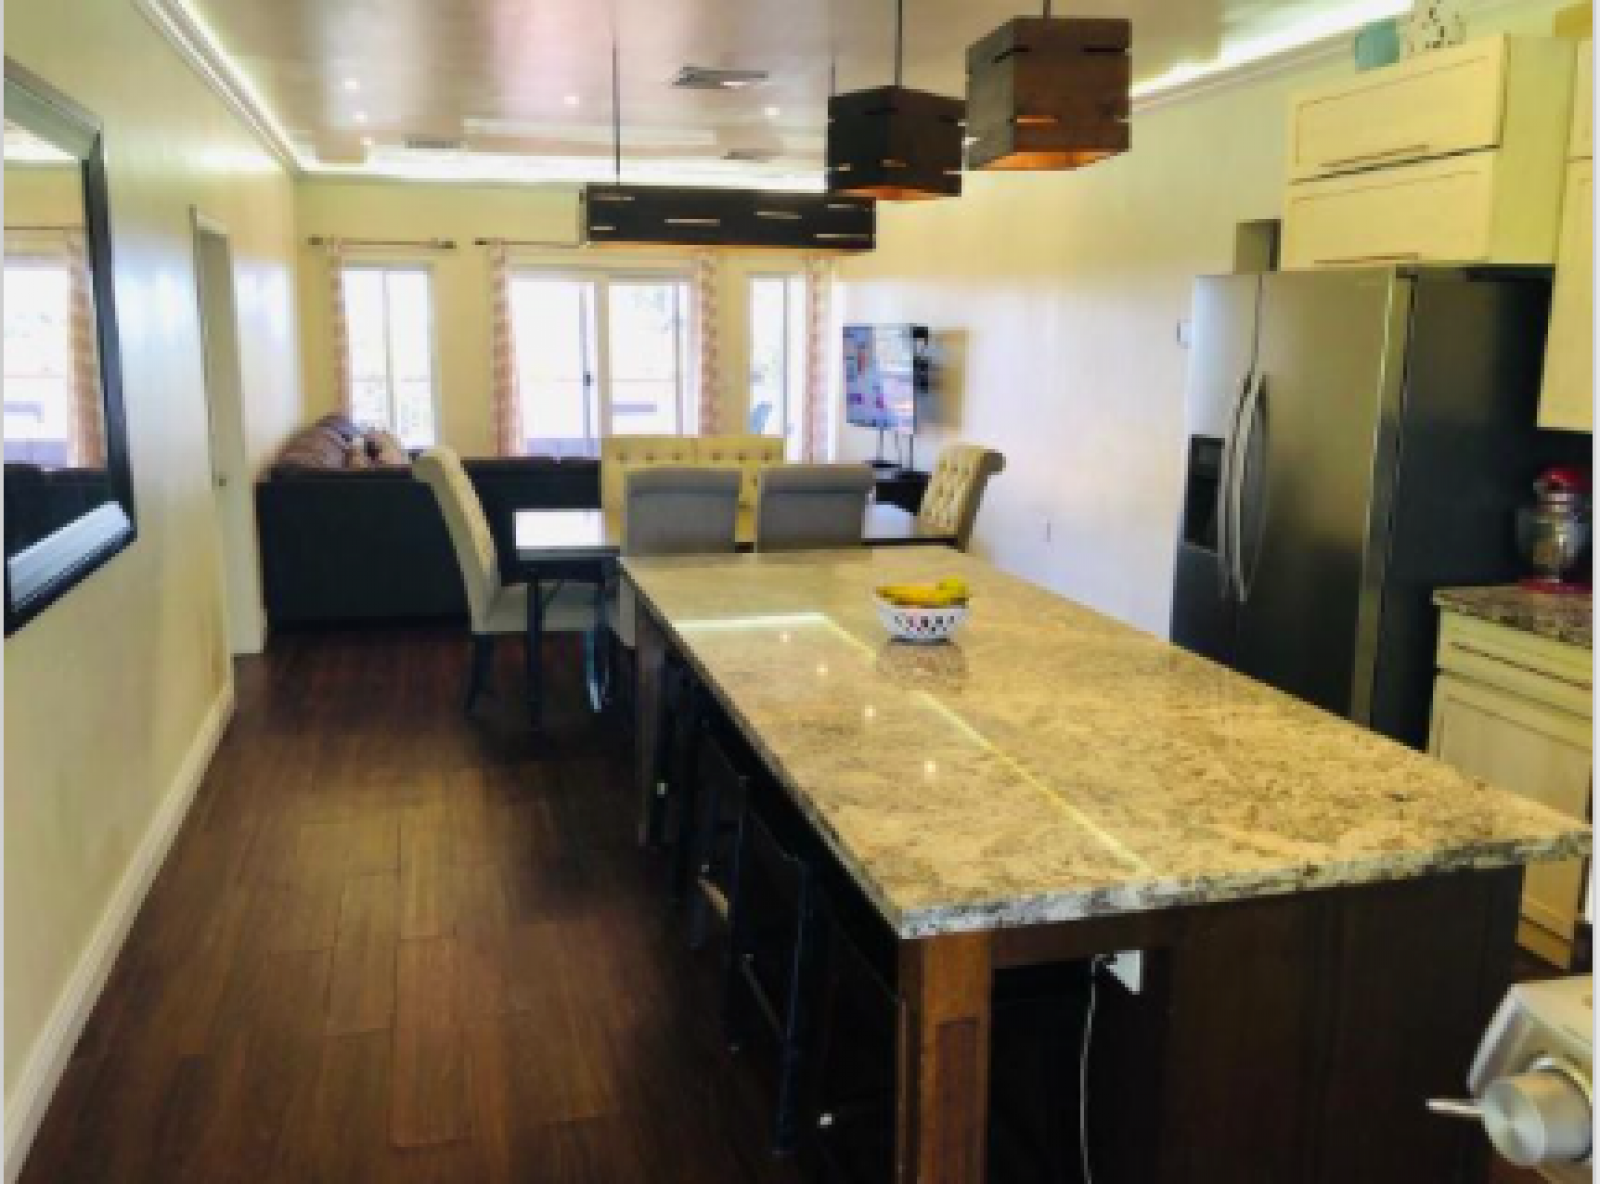 Granite countertops in a fully equipped kitchen.